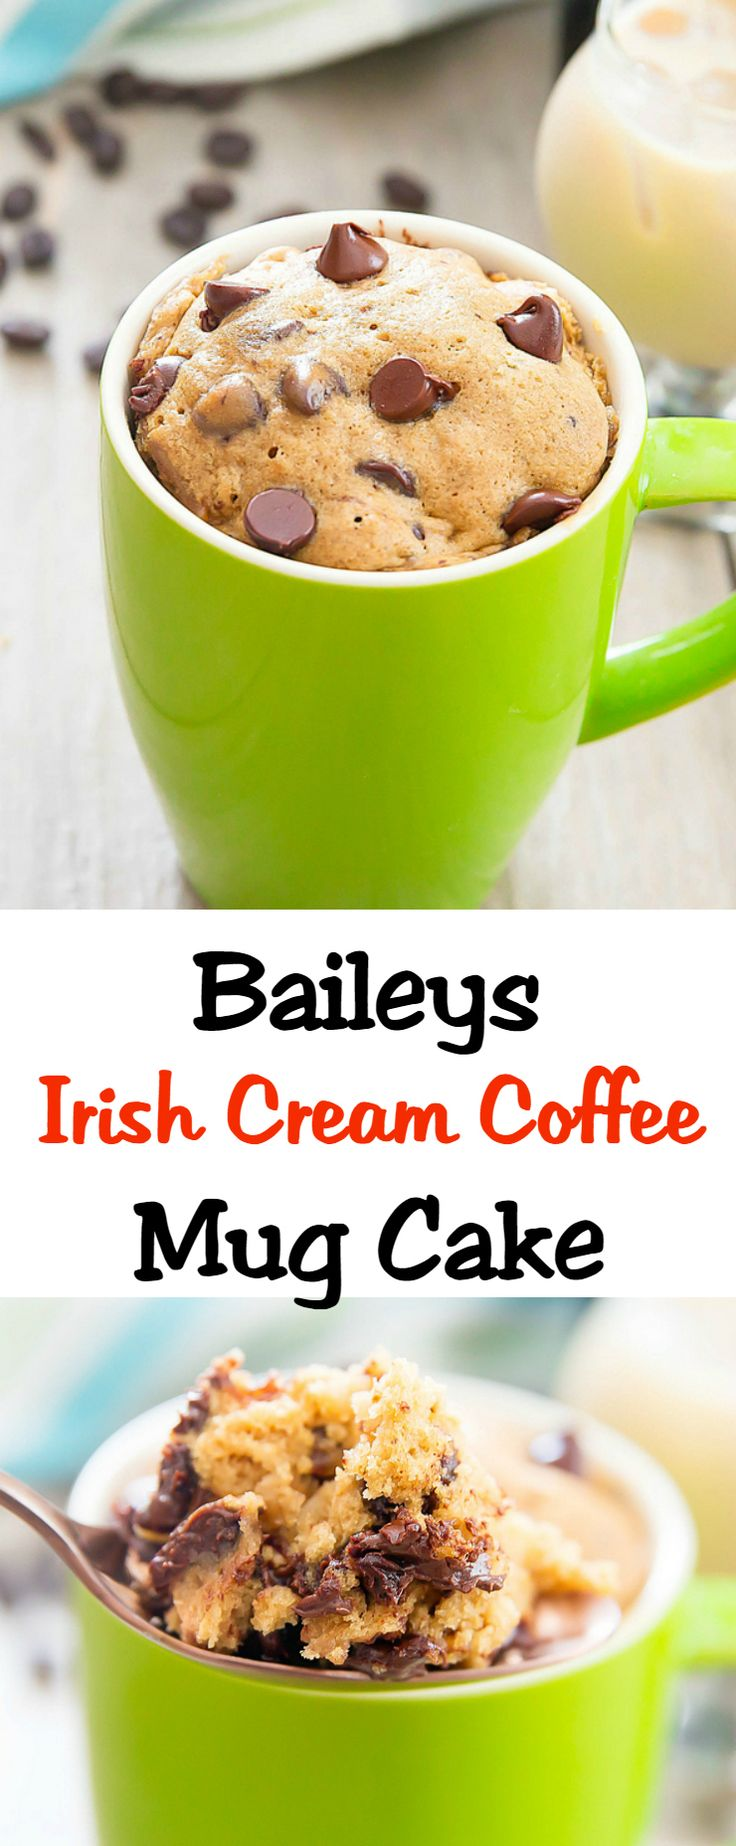 Baileys Irish Cream Coffee Mug Cake | Kirbie's Cravings | A San Diego food & travel blog